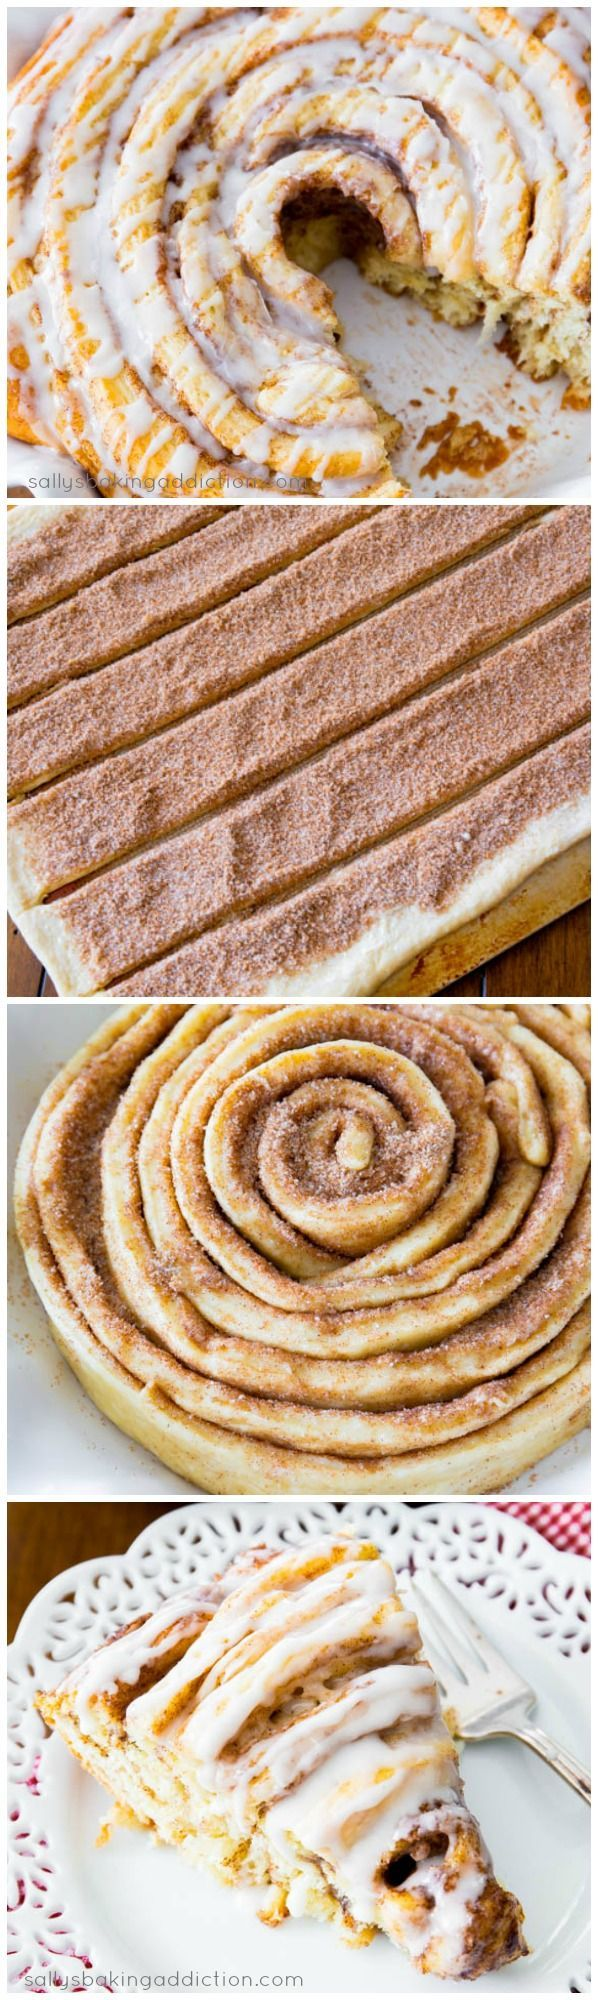 Learn how to make a beautiful, fluffy, and soft cinnamon roll cake using my kitchen-tested dough recipe.